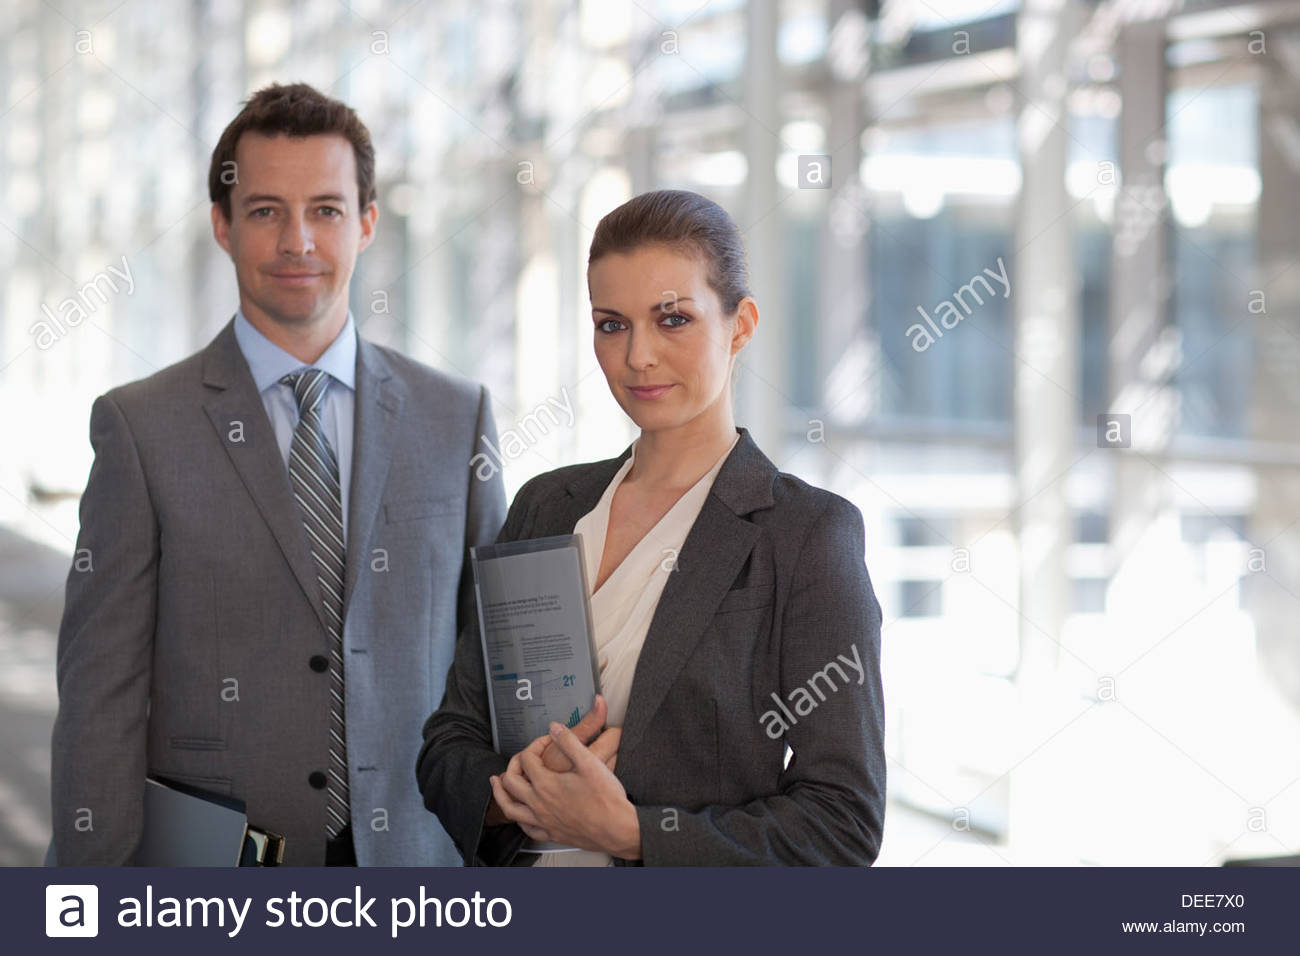 Portrait of smiling businessman and businesswoman in corridor - Stock Image